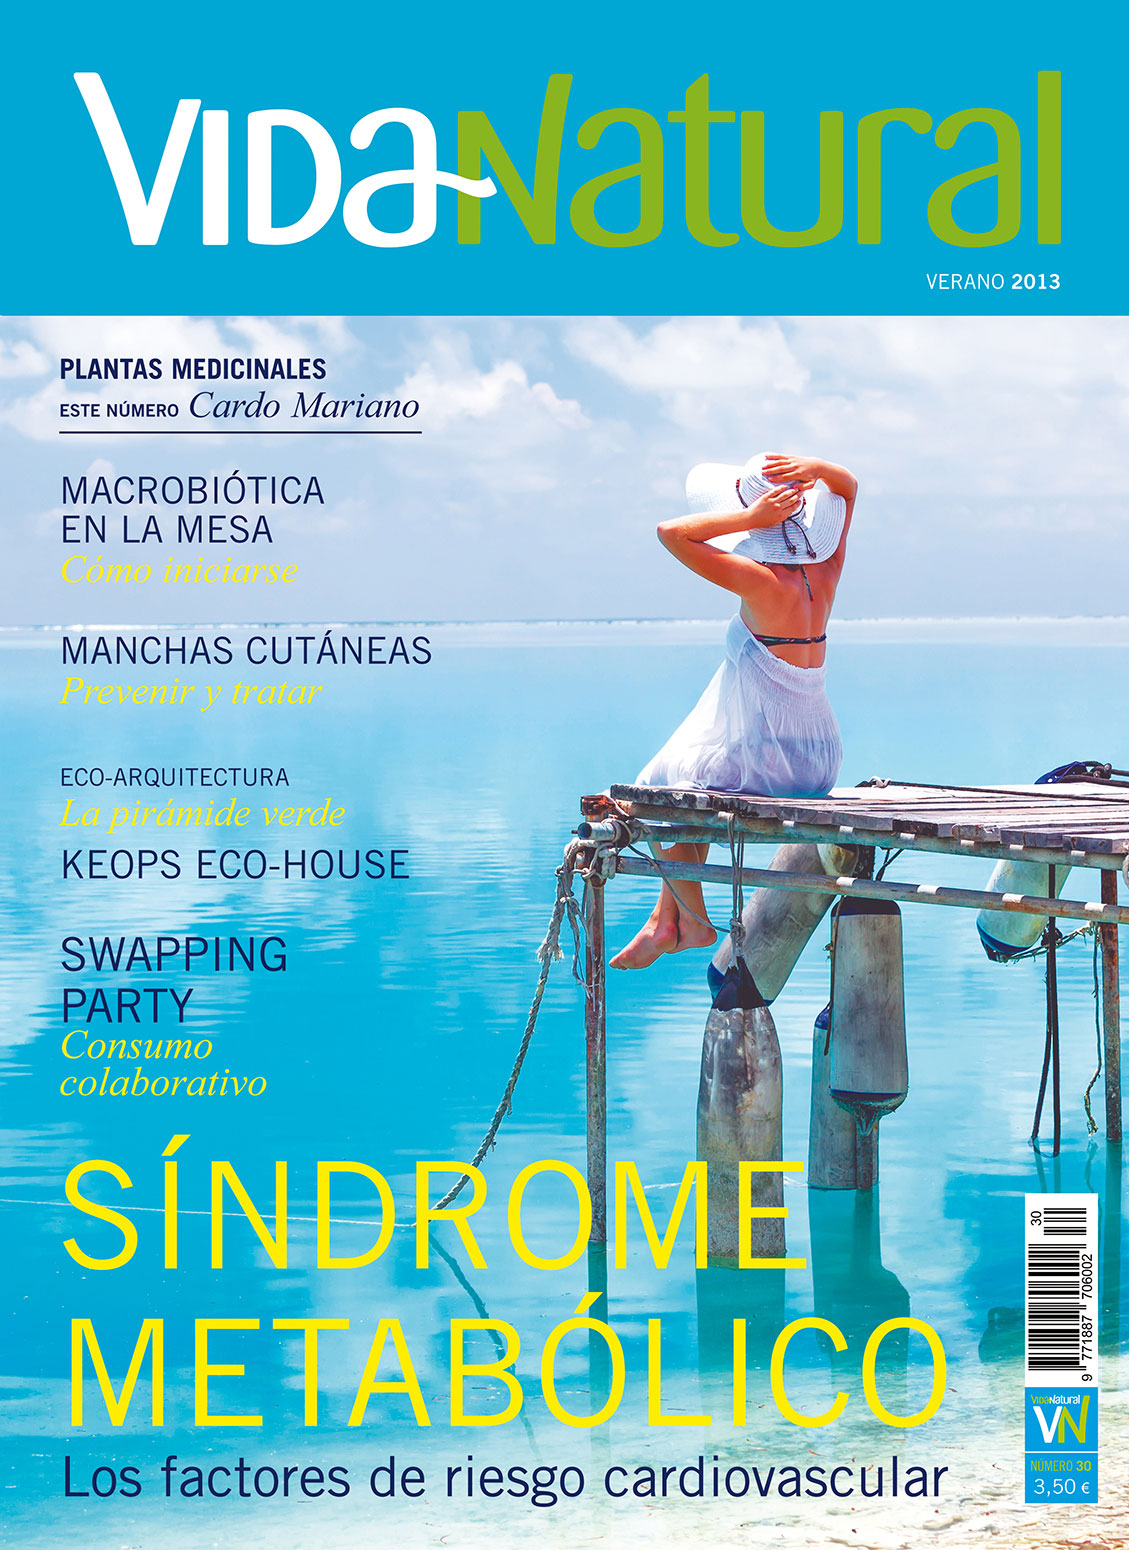 Revista Vida Natural nº 30